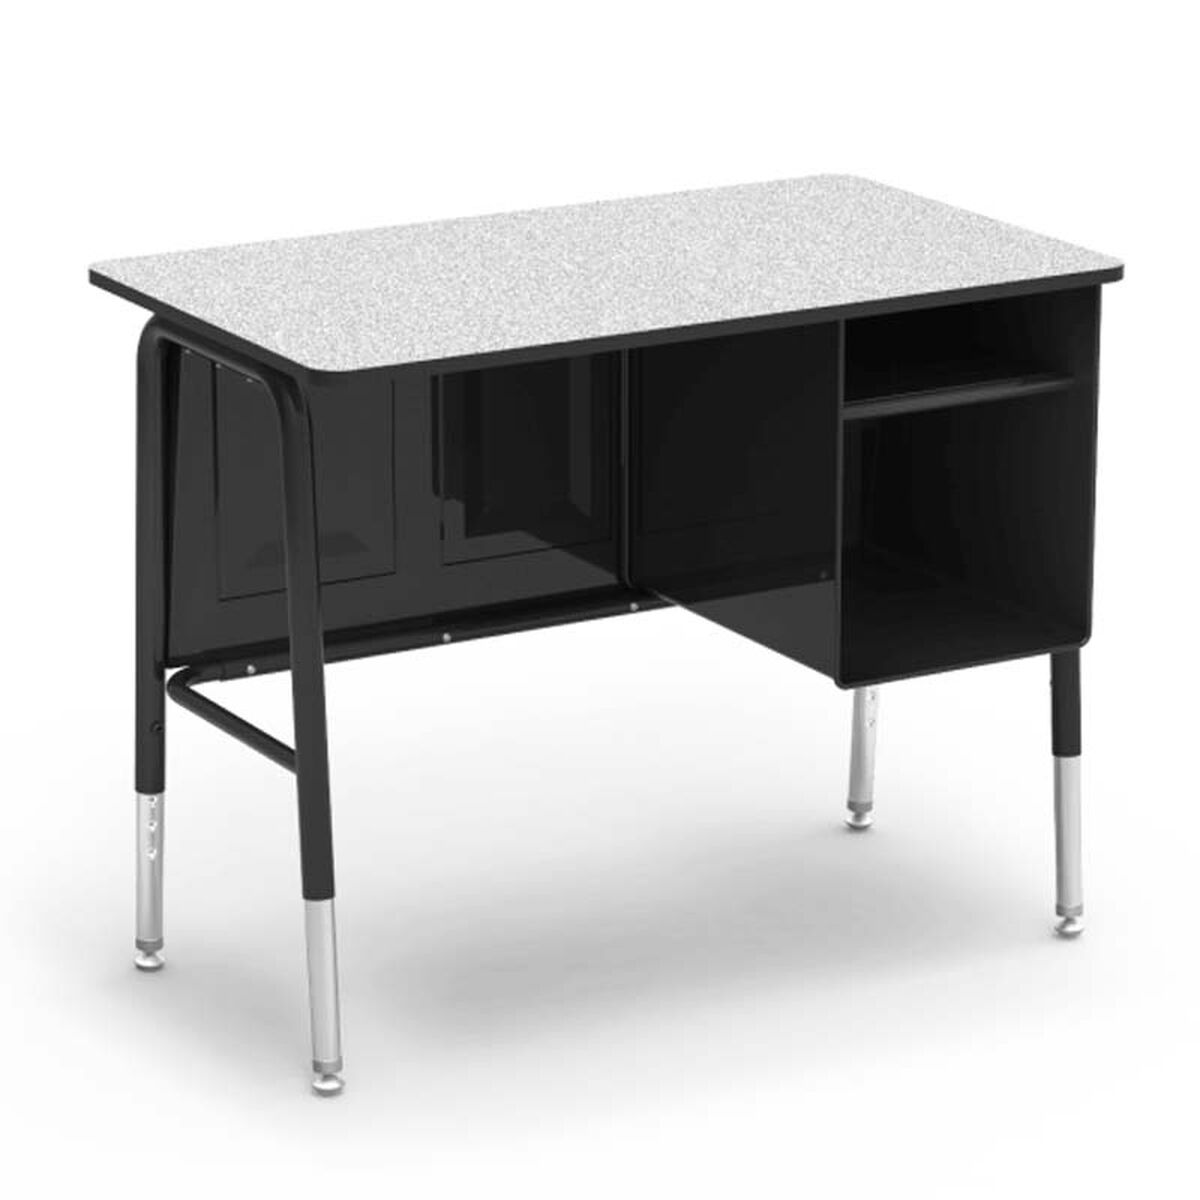 Our 765 Series Jr Executive Desk With Gray Nebula Laminate Top And Black Frame